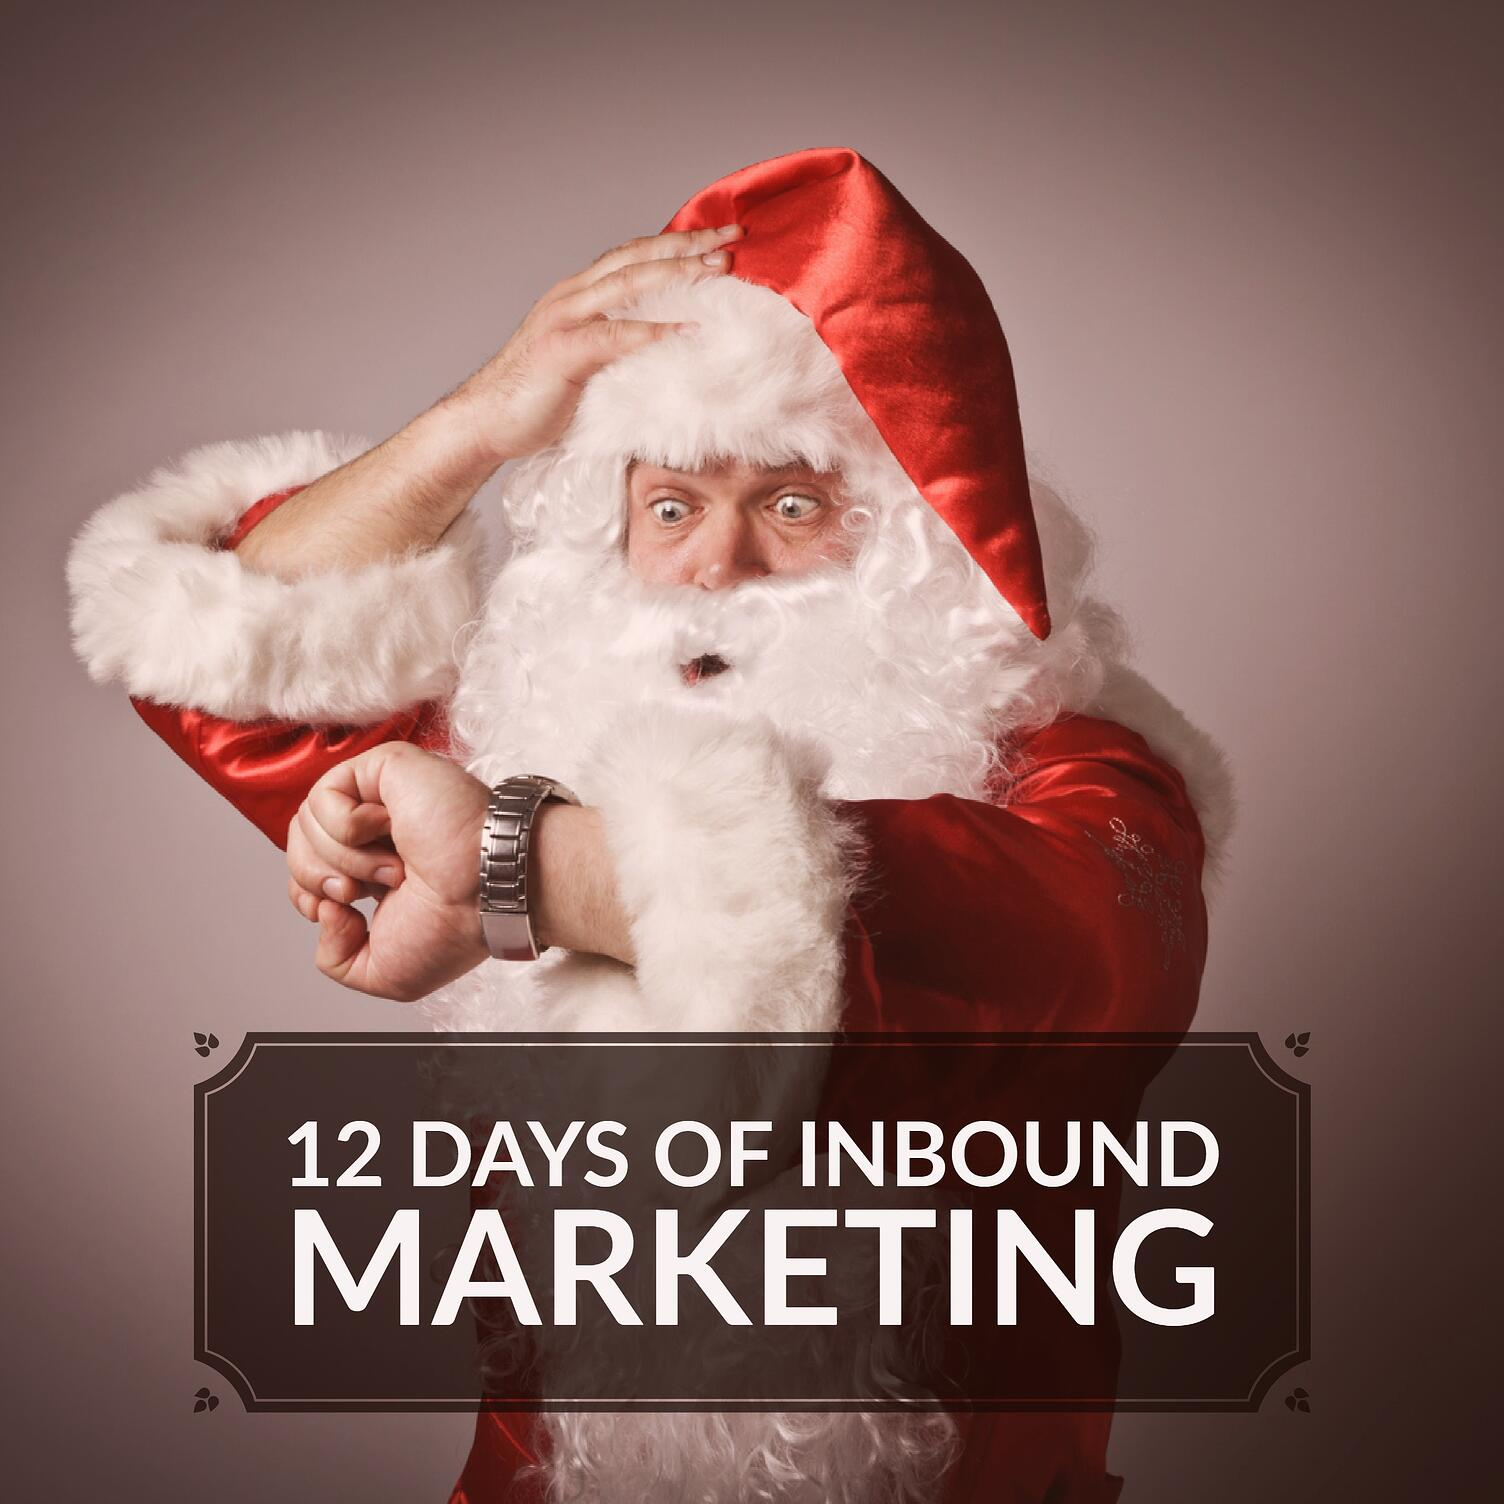 inbound marketing tips for christmas